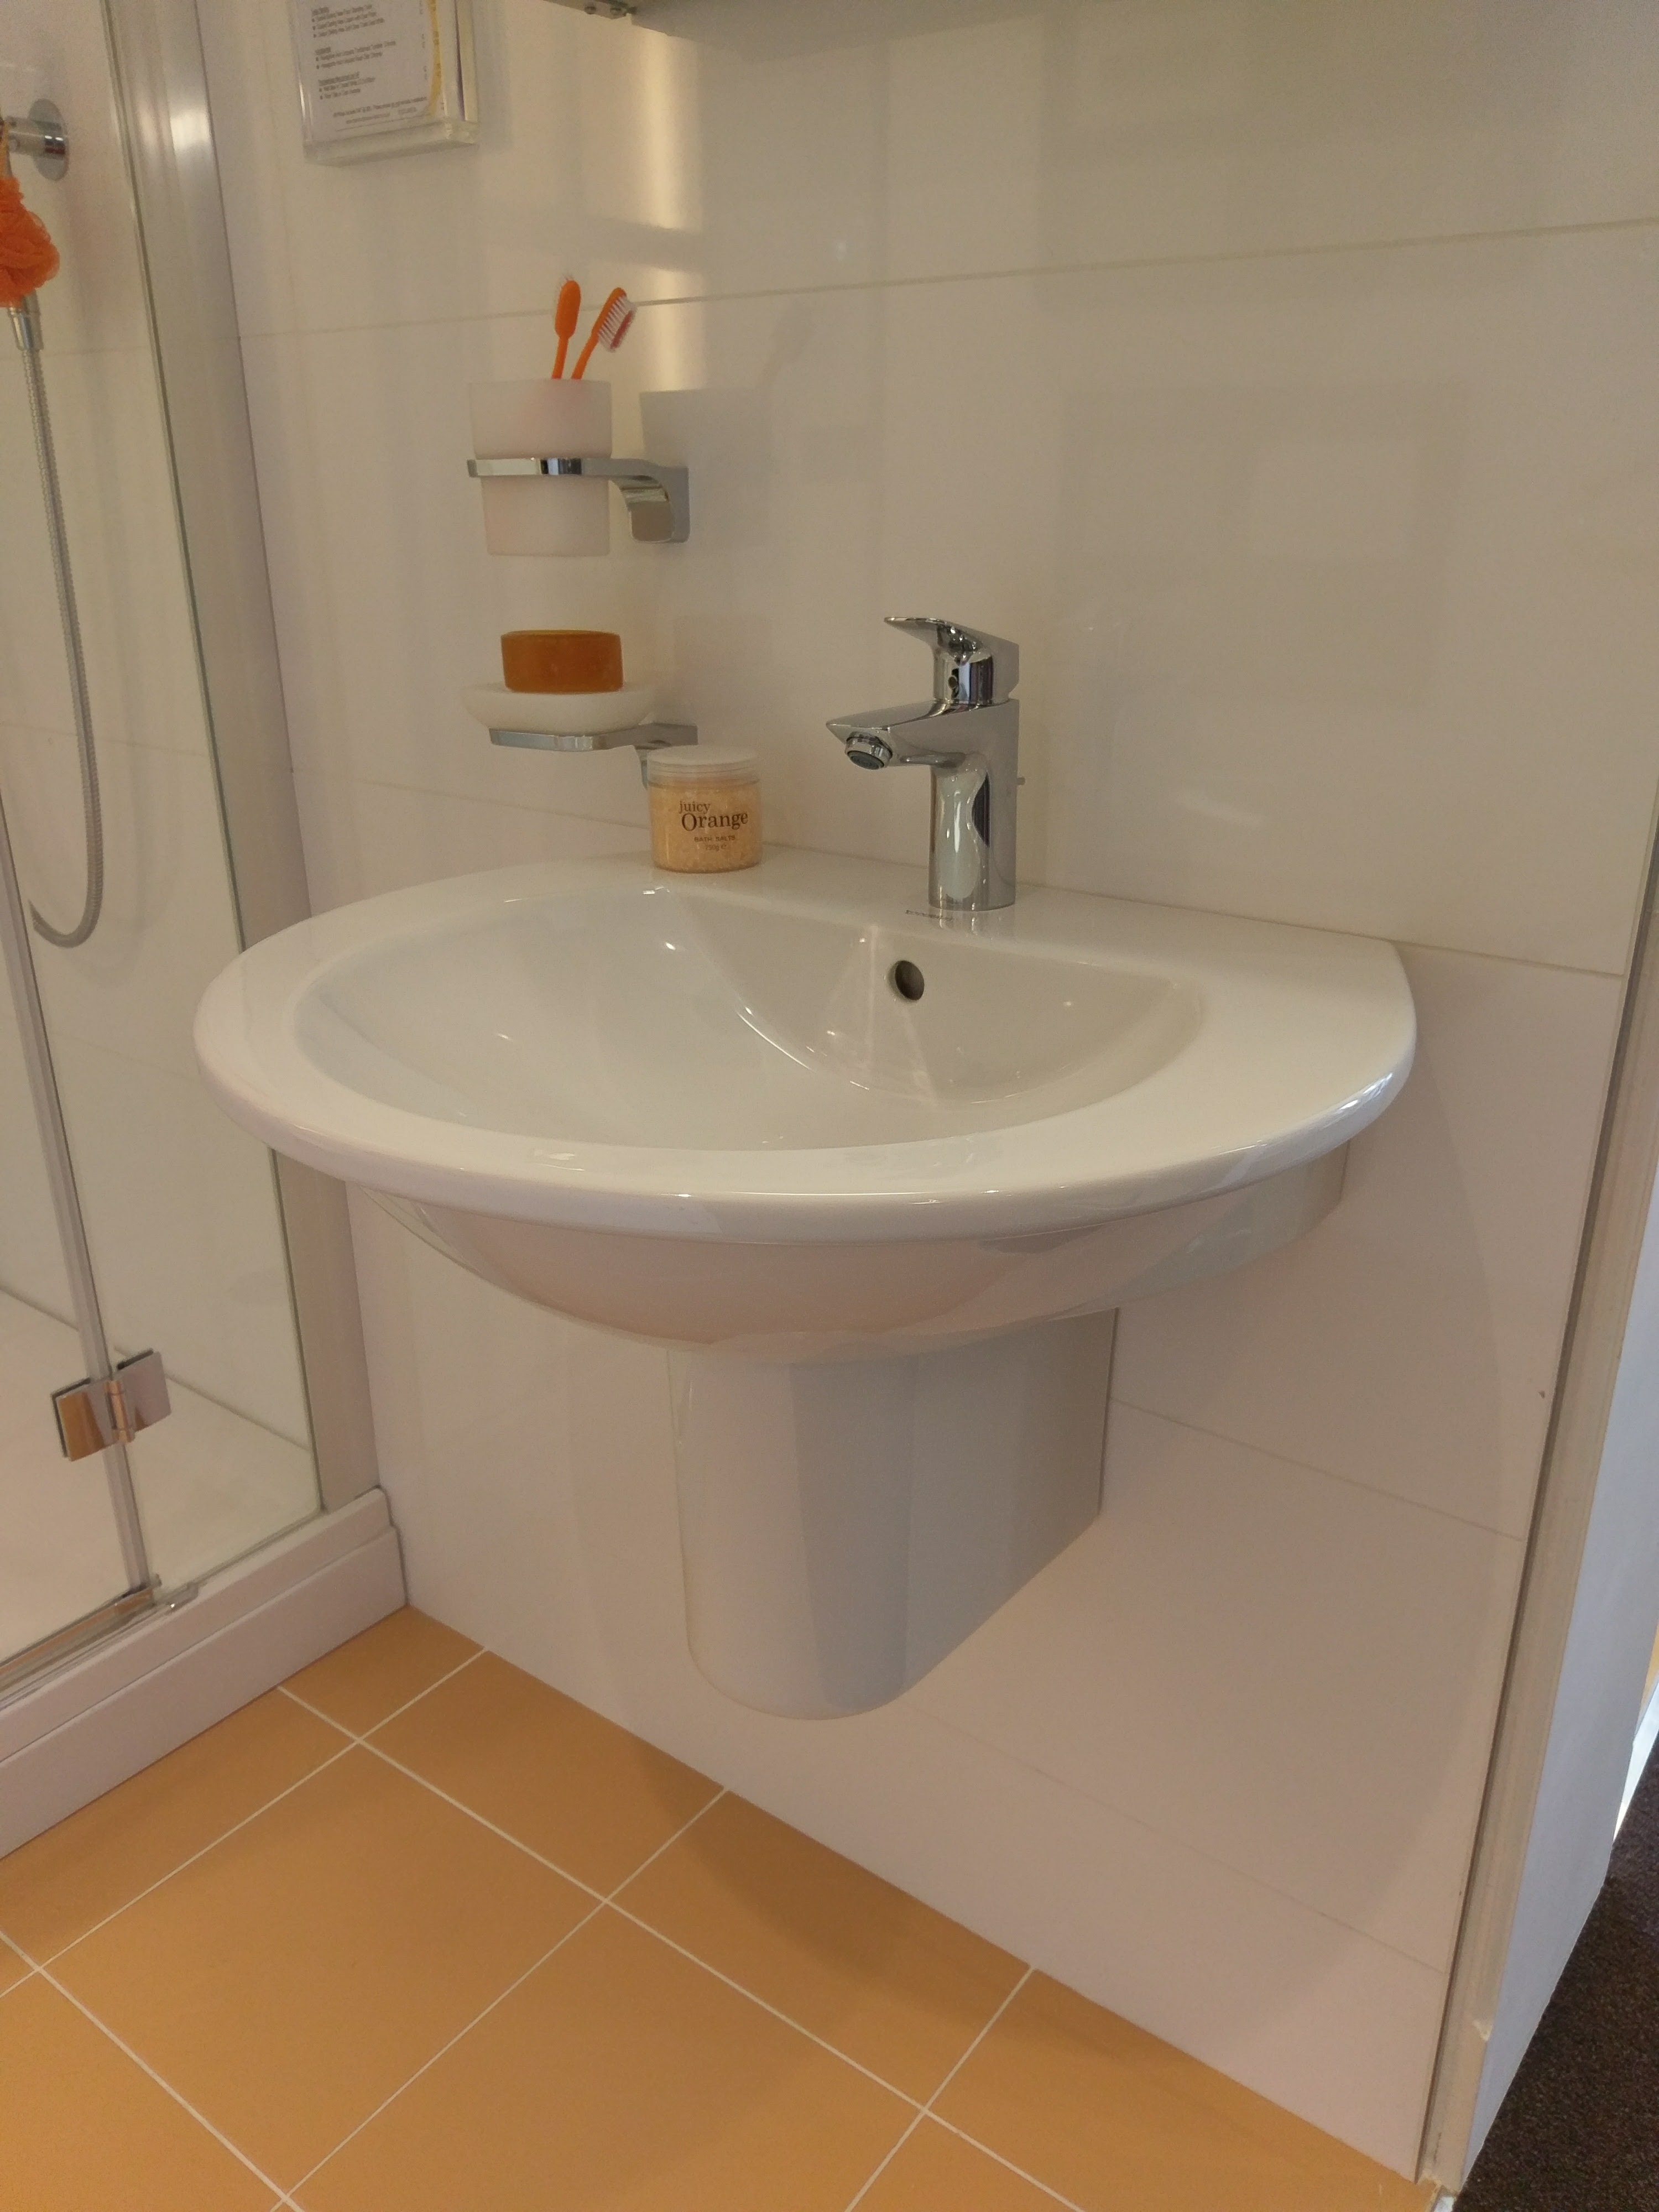 washbasin of full sinks philippe me with by lavabo design basin duravit pedestal starck integrated countertop sink size